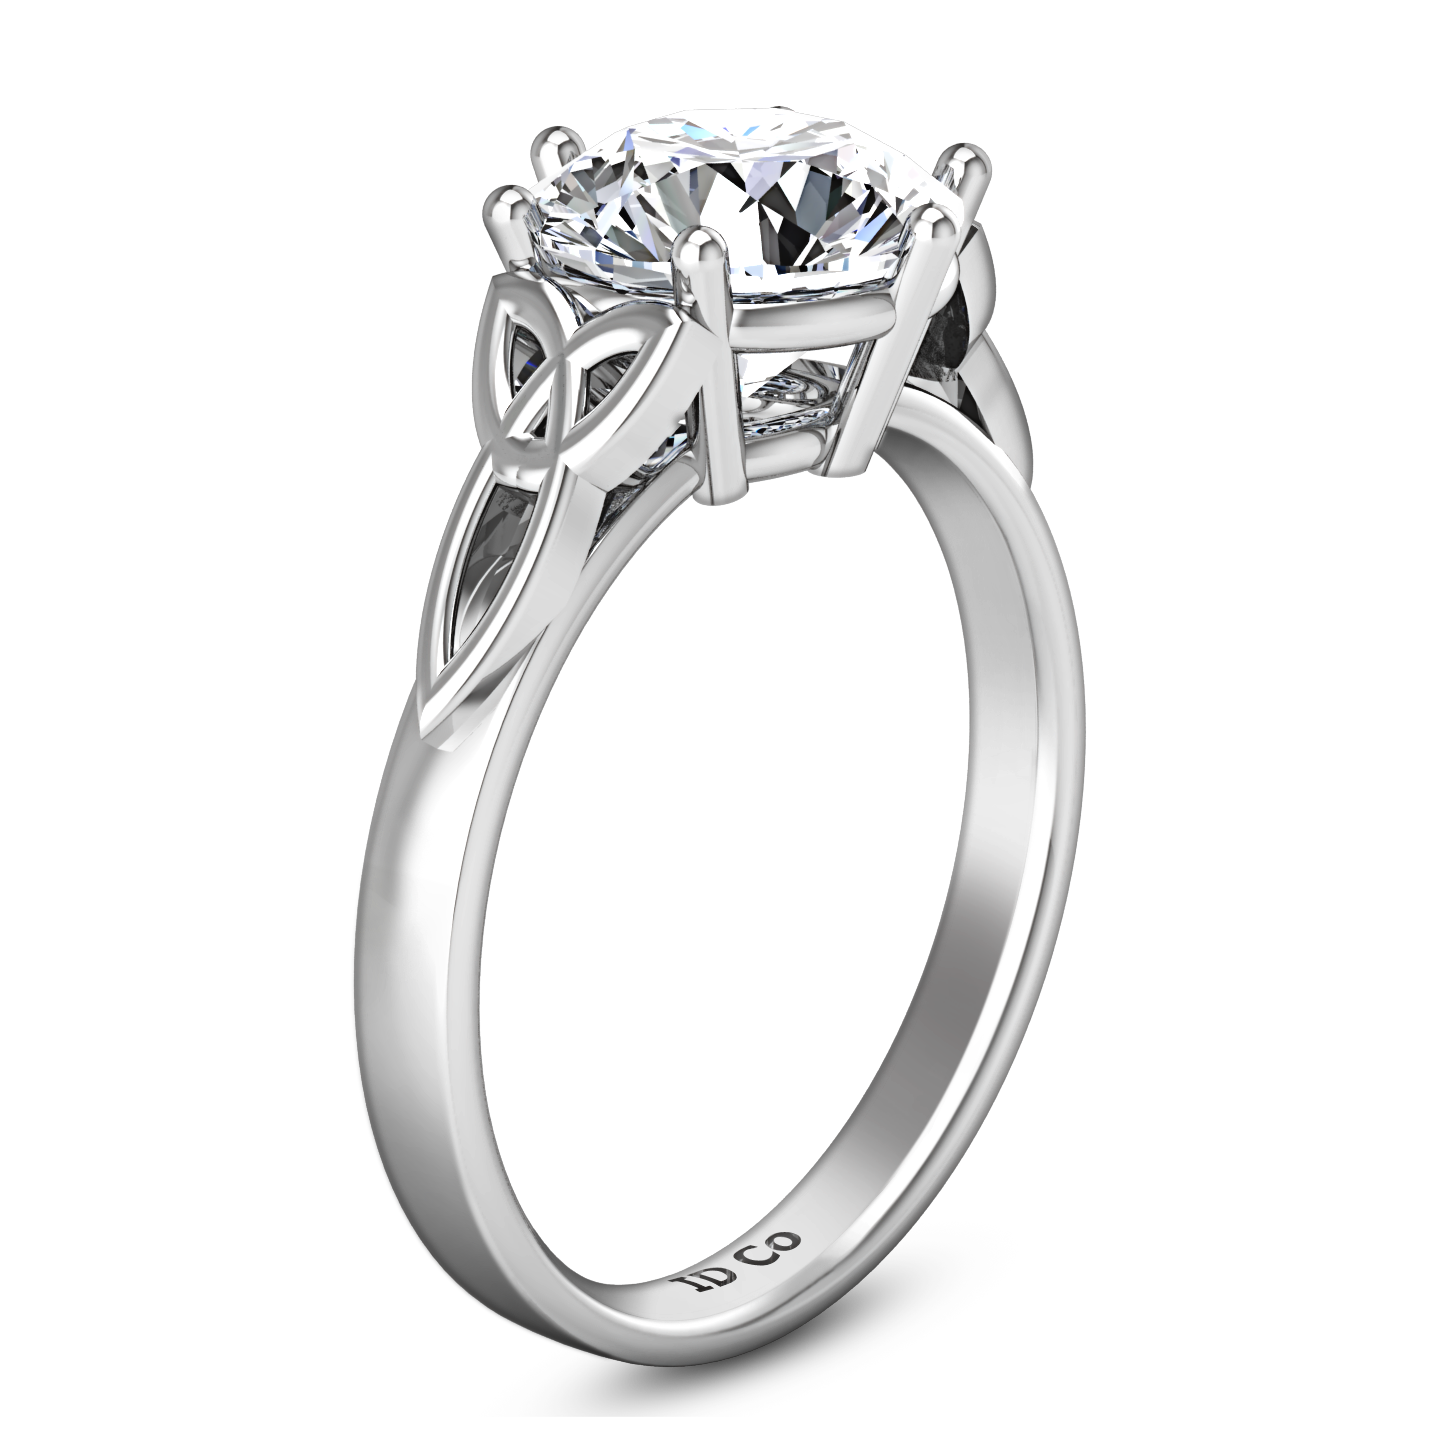 ring engagement rings love wedding diamond cut goddess of venus unique round solitaire